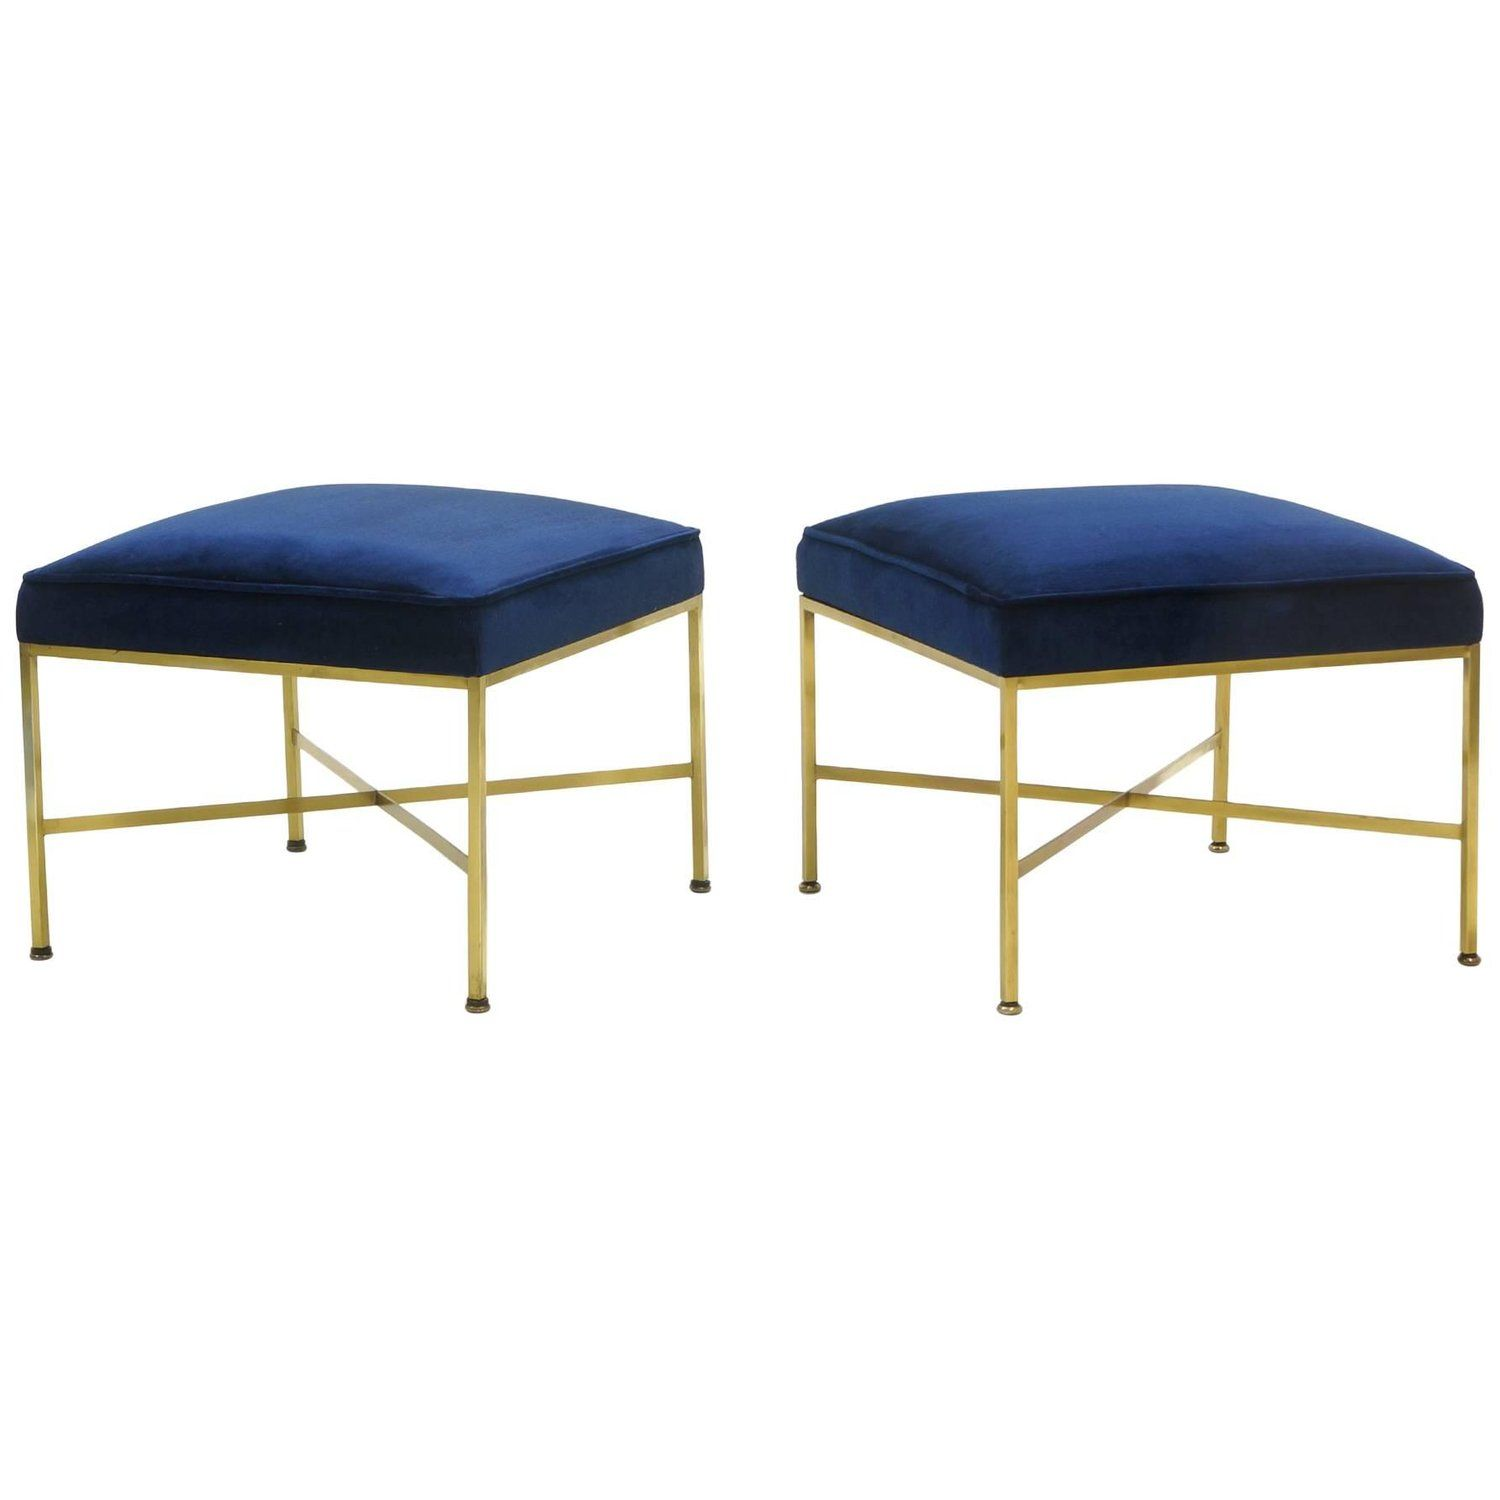 Pair of paul mccobb stools solid brass frames and cross stretchers